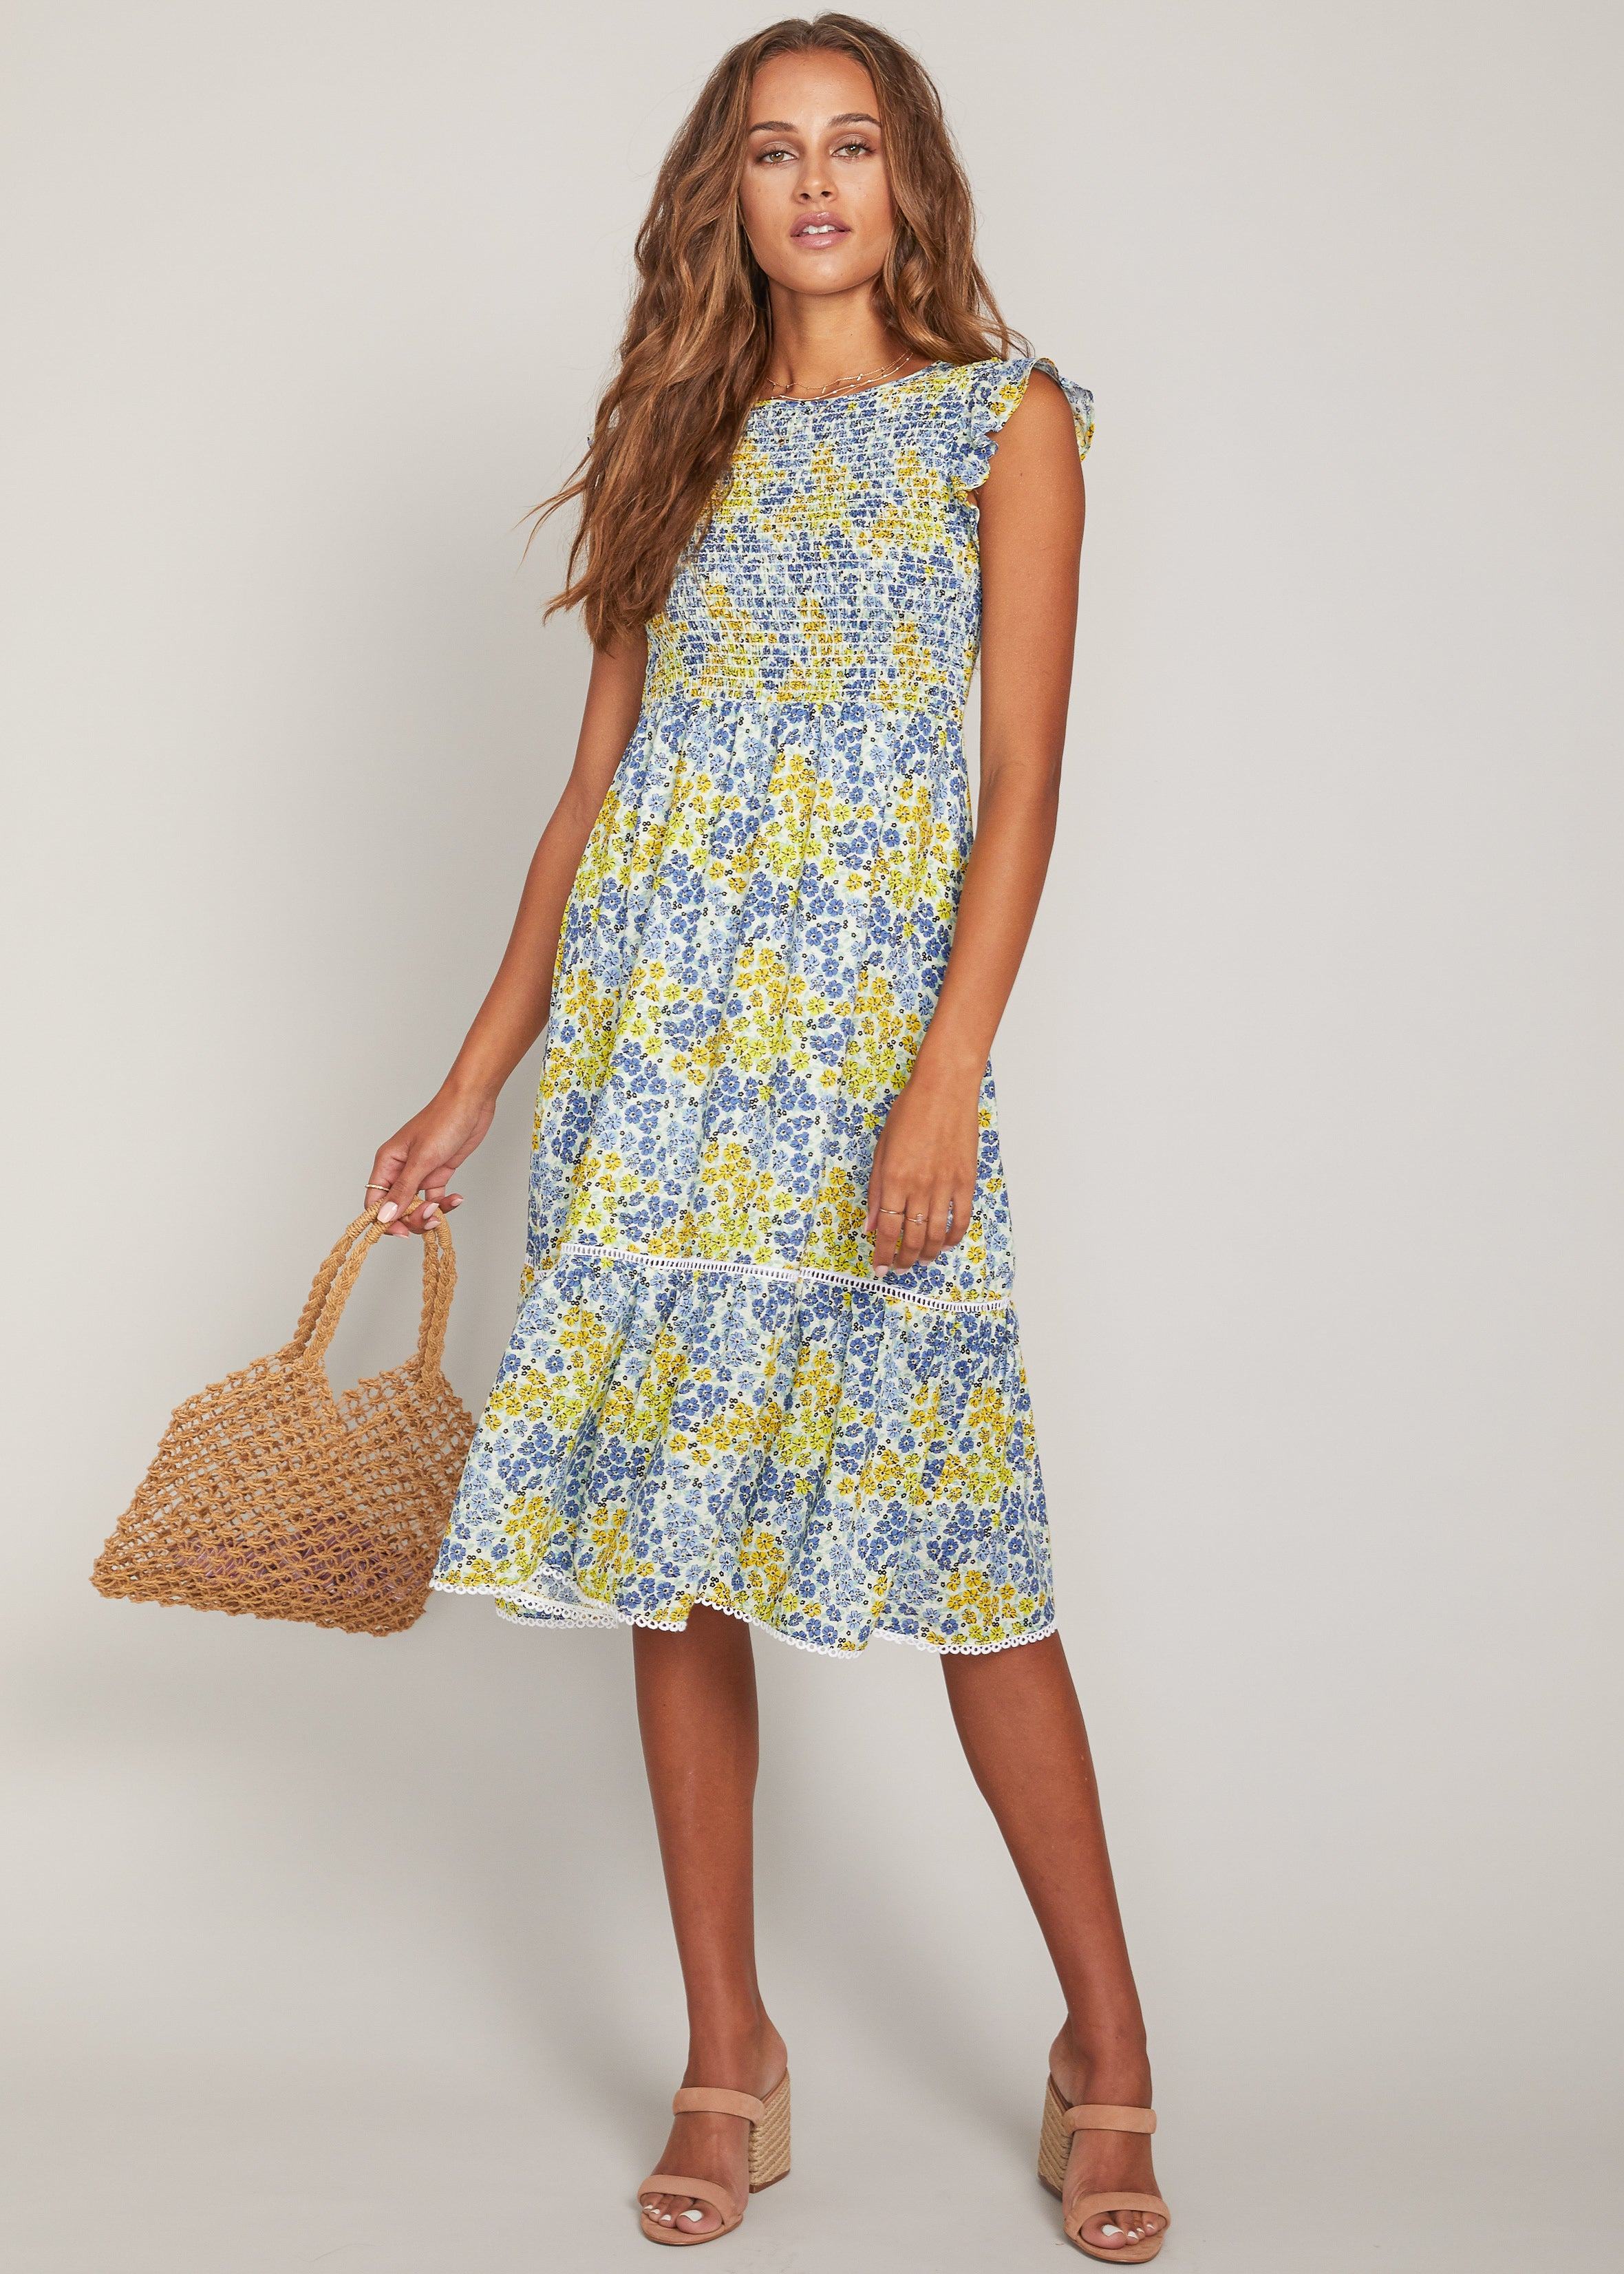 Blossom And Bloom Midi Dress